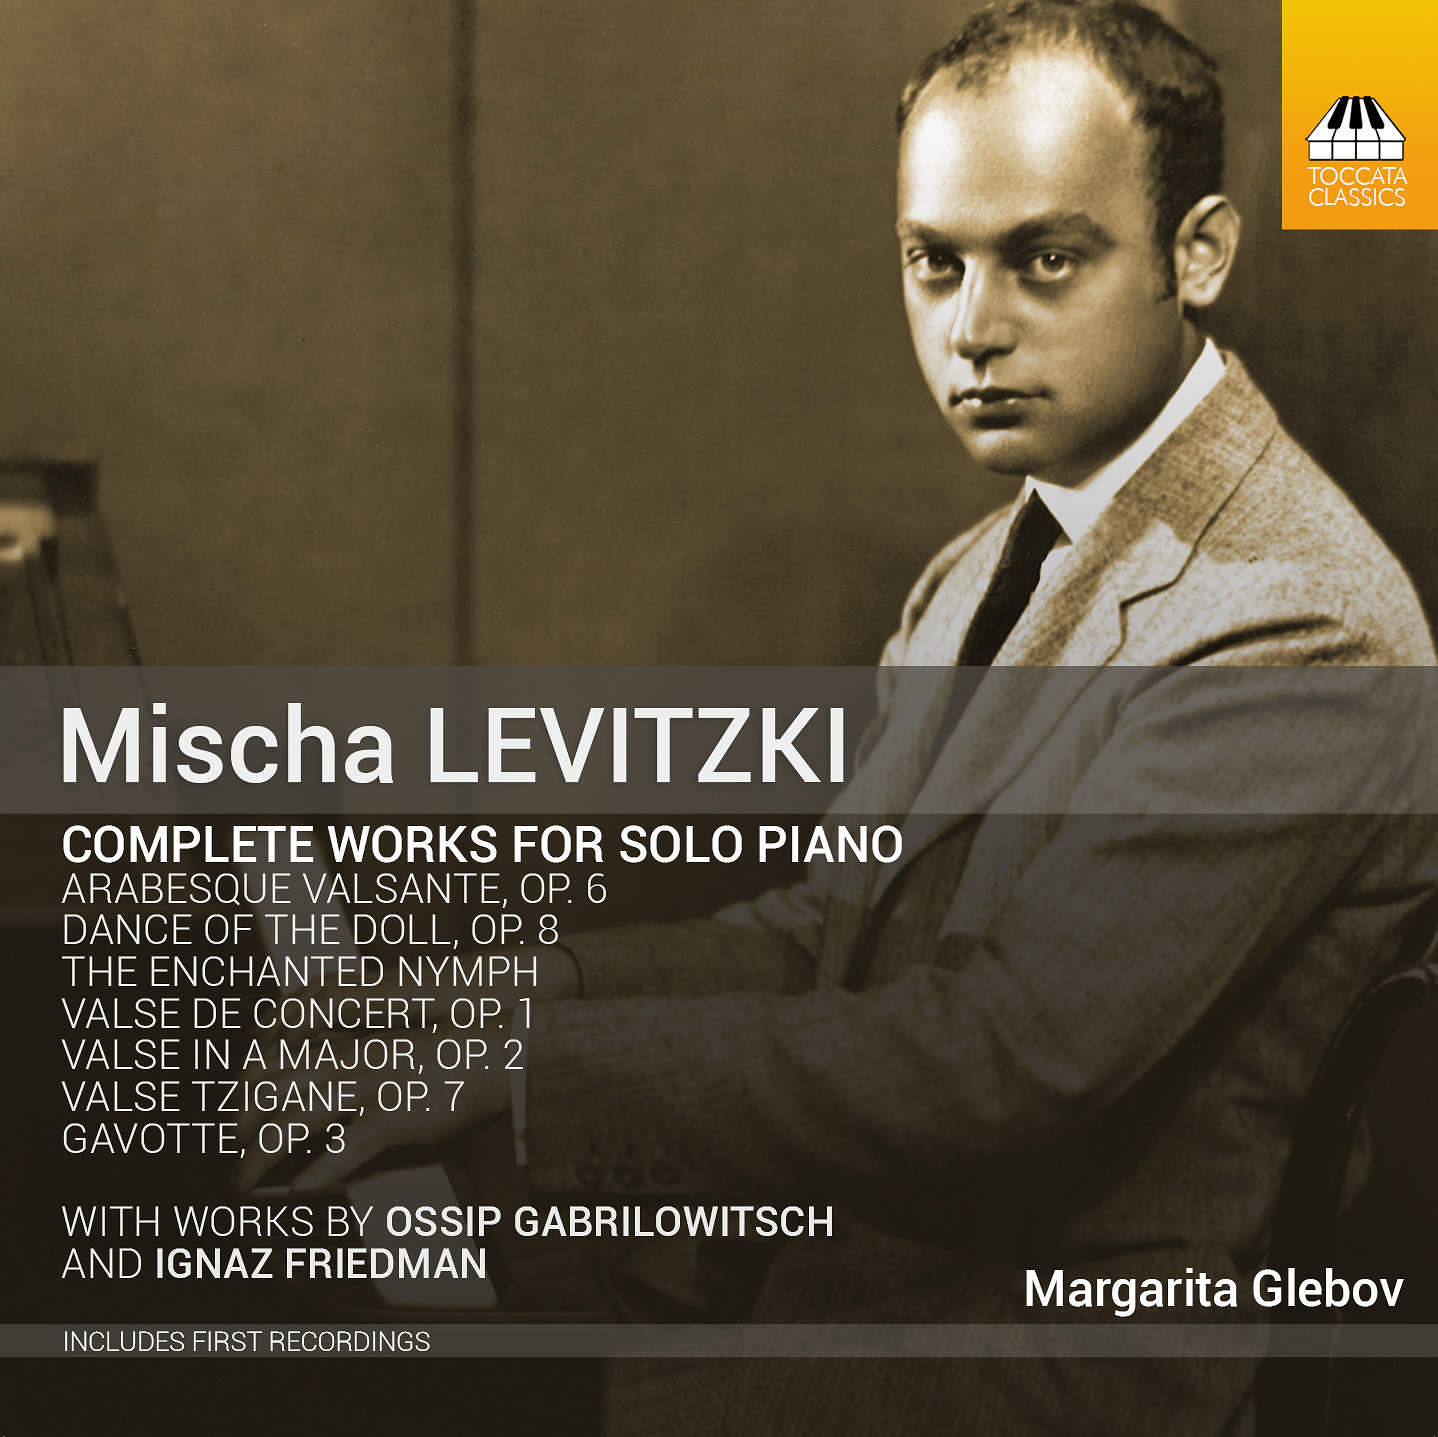 Mischa Levitzki: Complete Works for Solo Piano